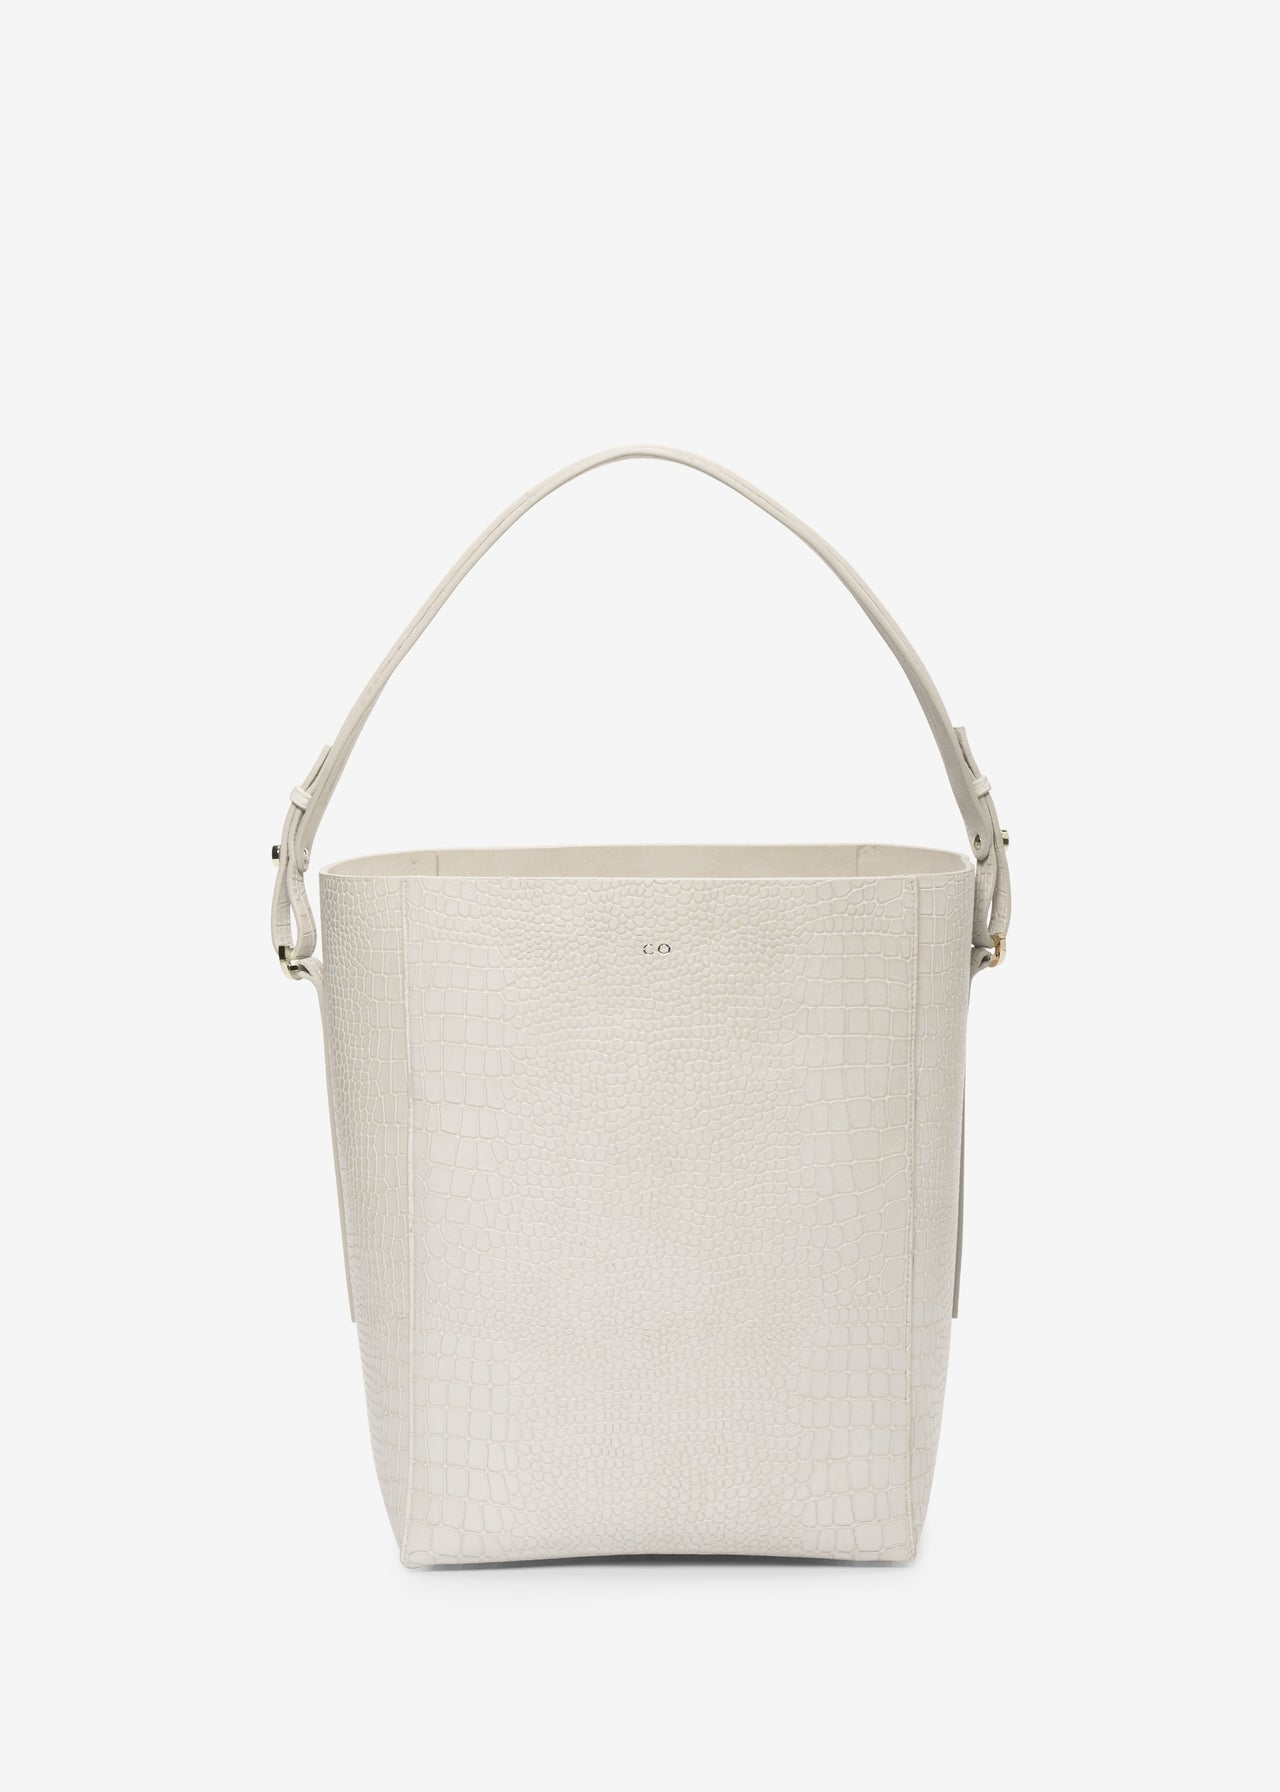 Bucket Bag in Embossed Leather - White